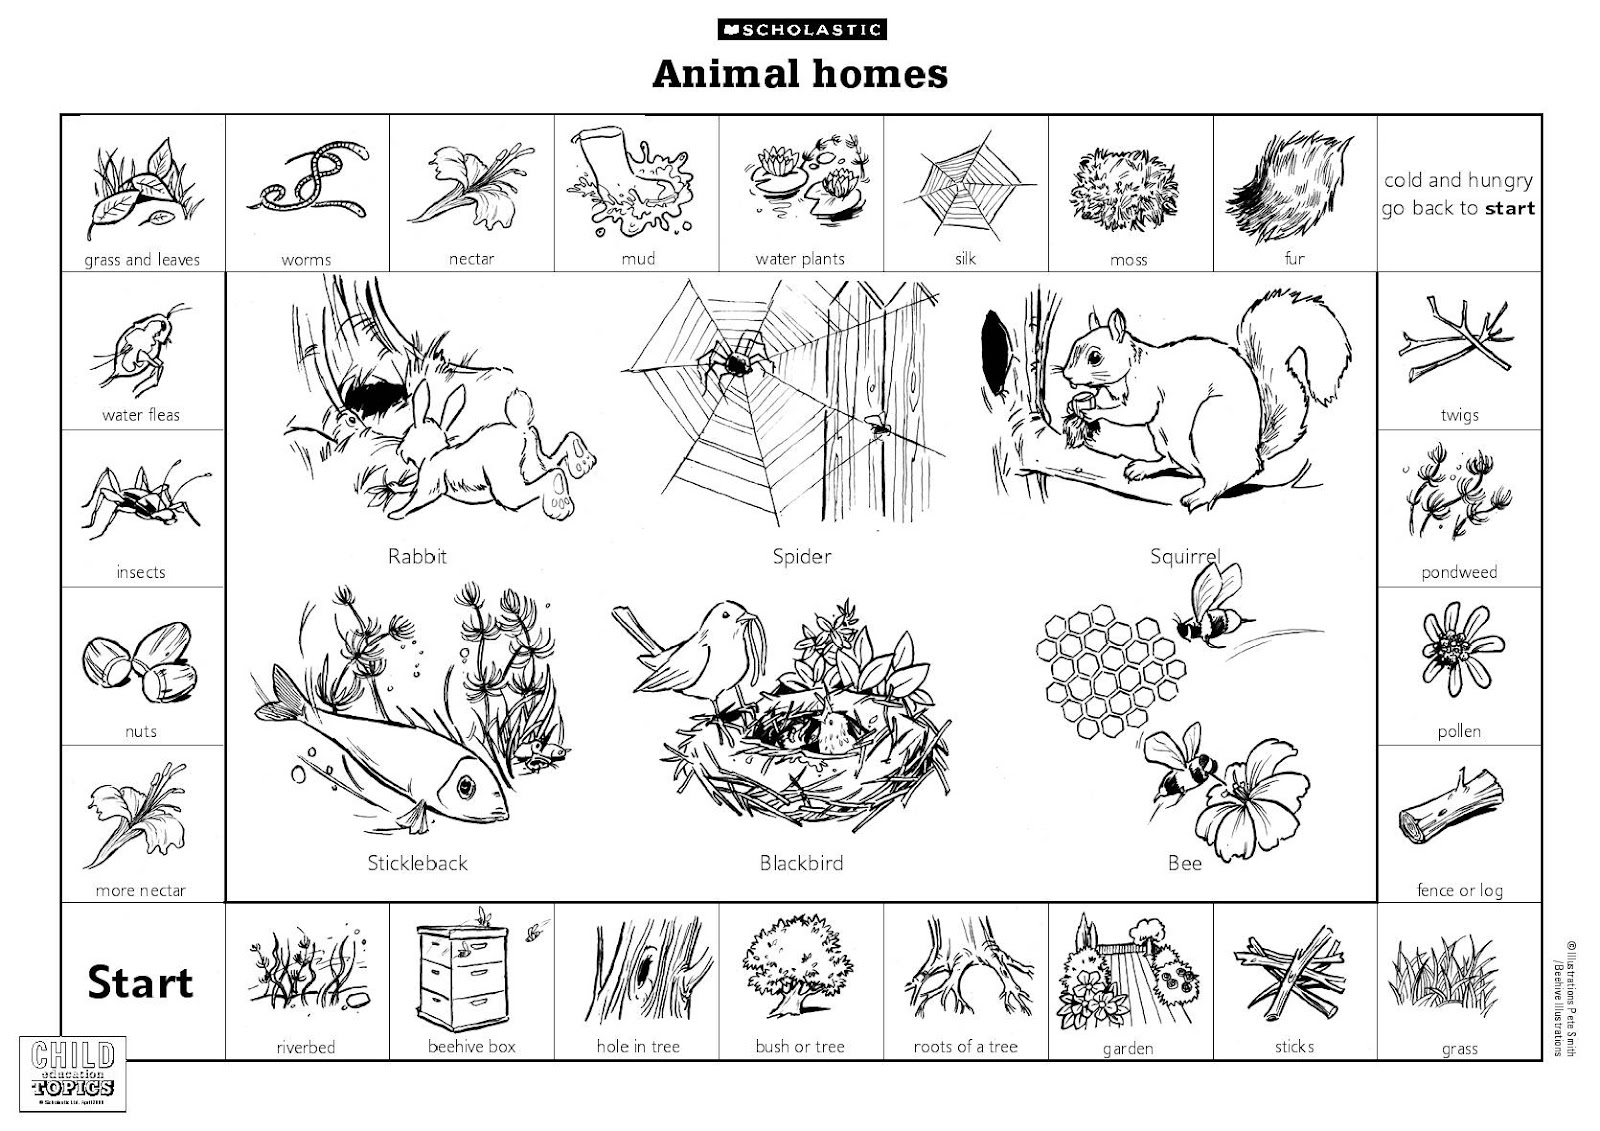 Animal Needs Worksheet Grade 3 http://laimooikeowd20102042511.blogspot.com/